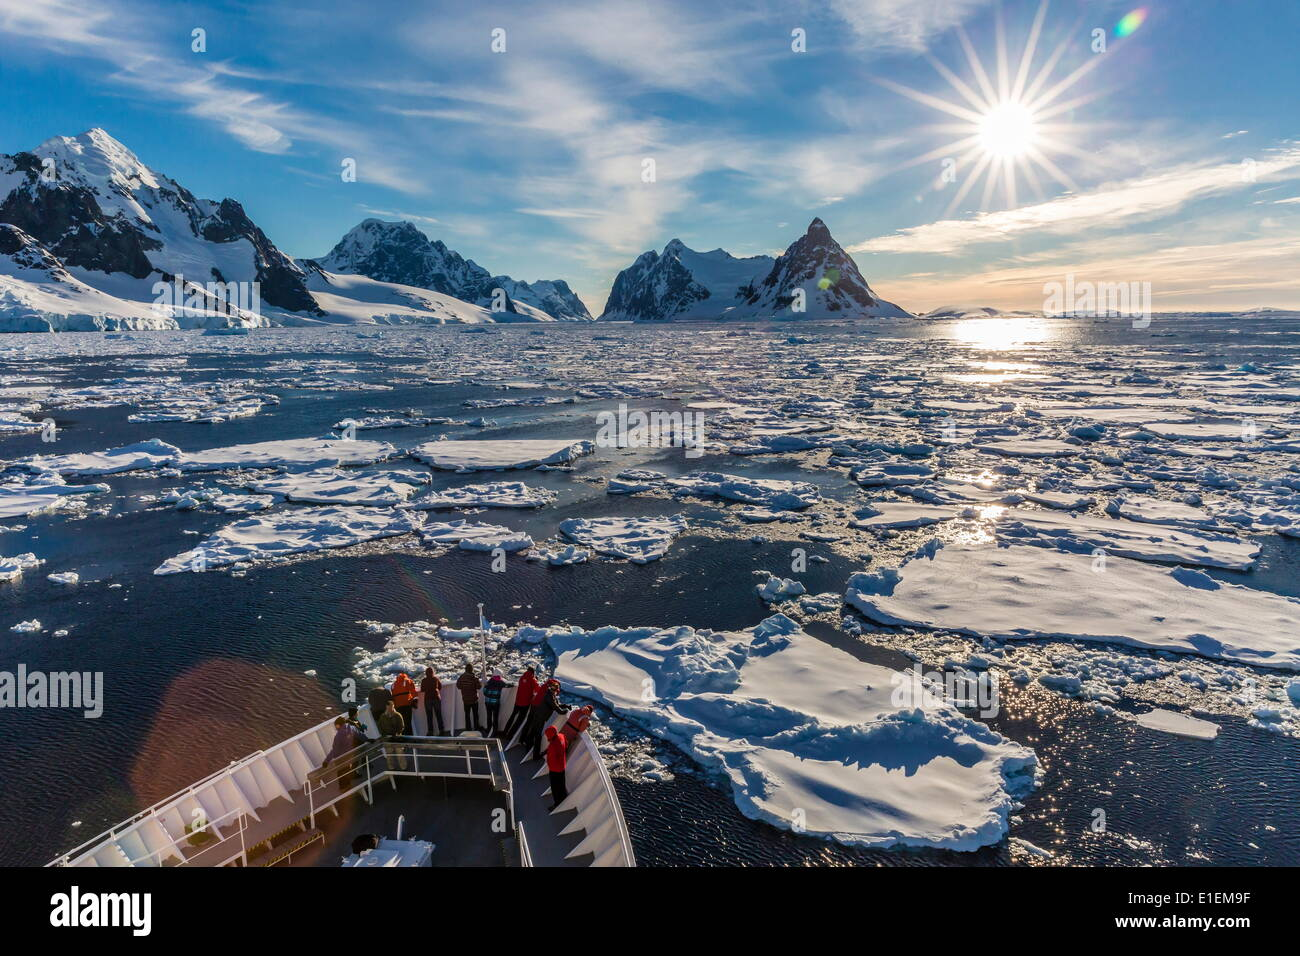 The Lindblad Expeditions ship National Geographic Explorer in the Lemaire Channel, Antarctica, Polar Regions - Stock Image